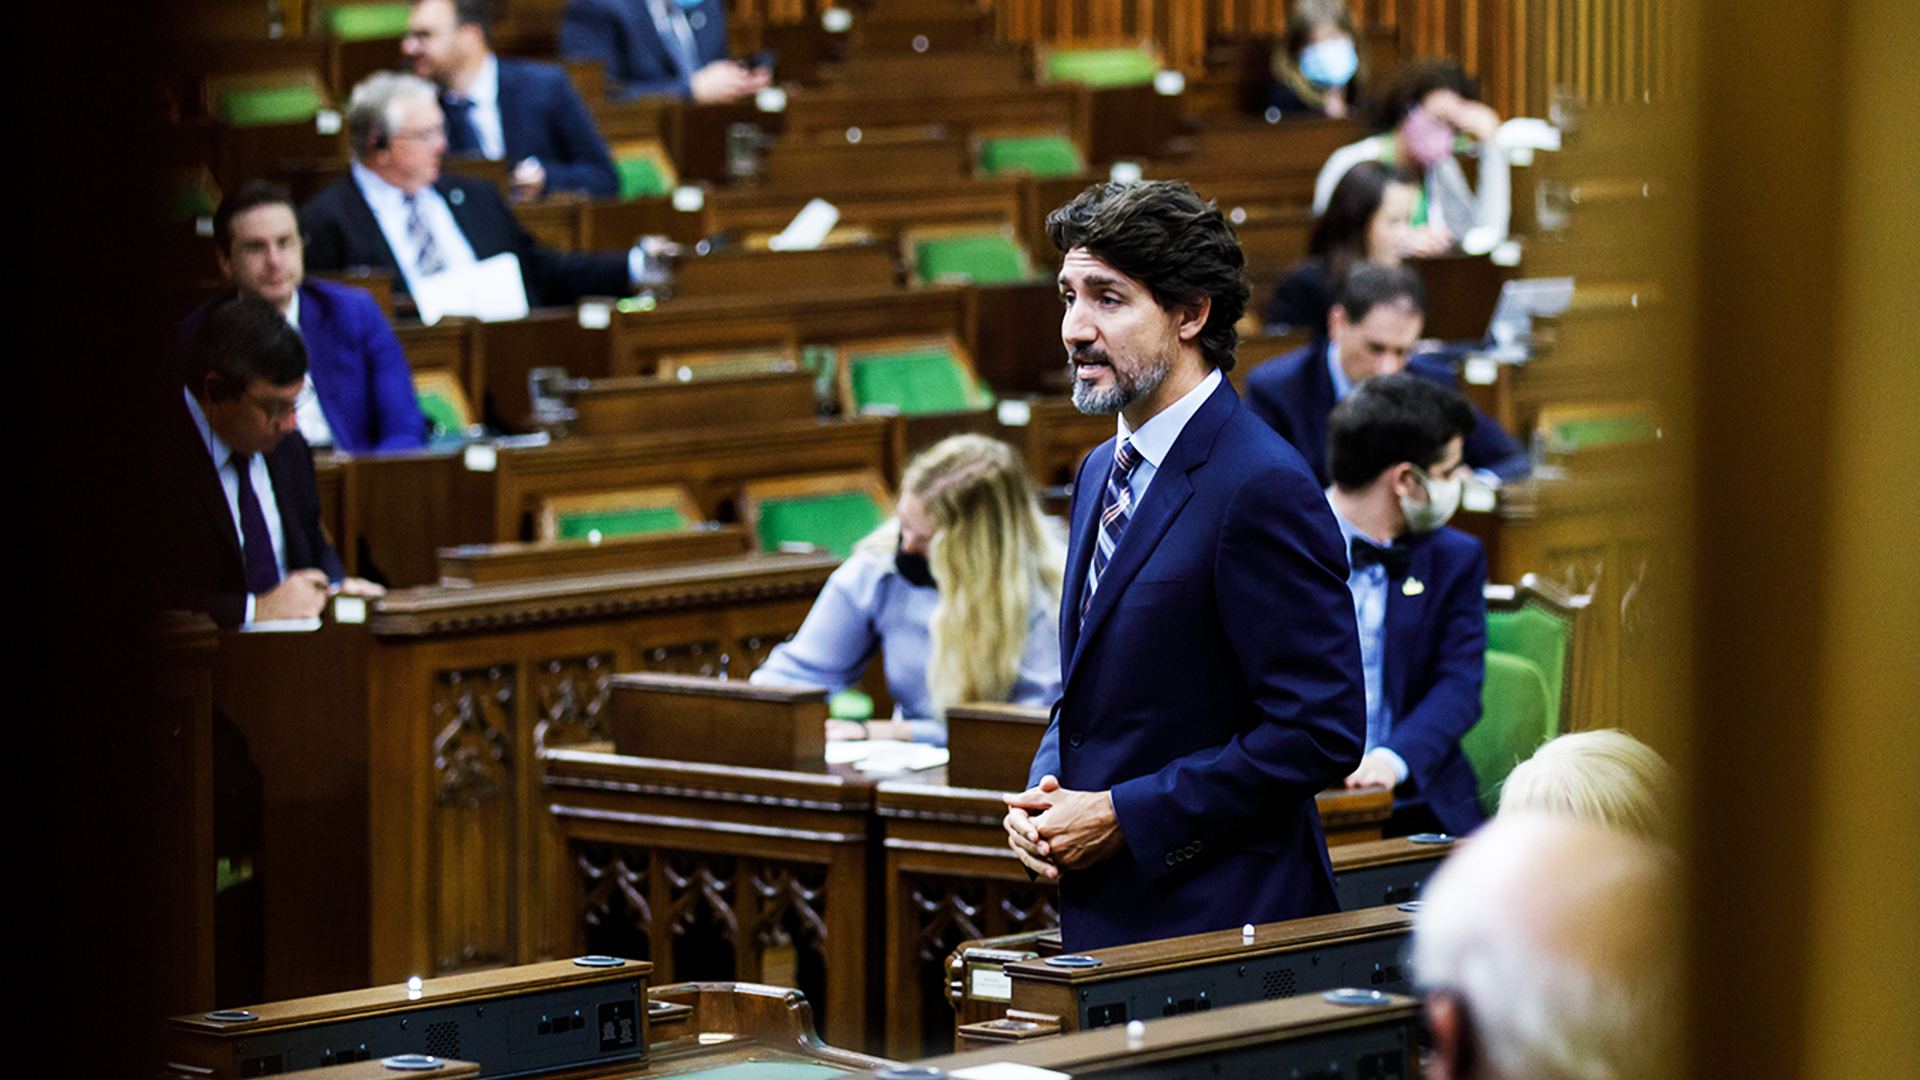 Trudeau gov't handed out official talking points to criticize The Epoch Times